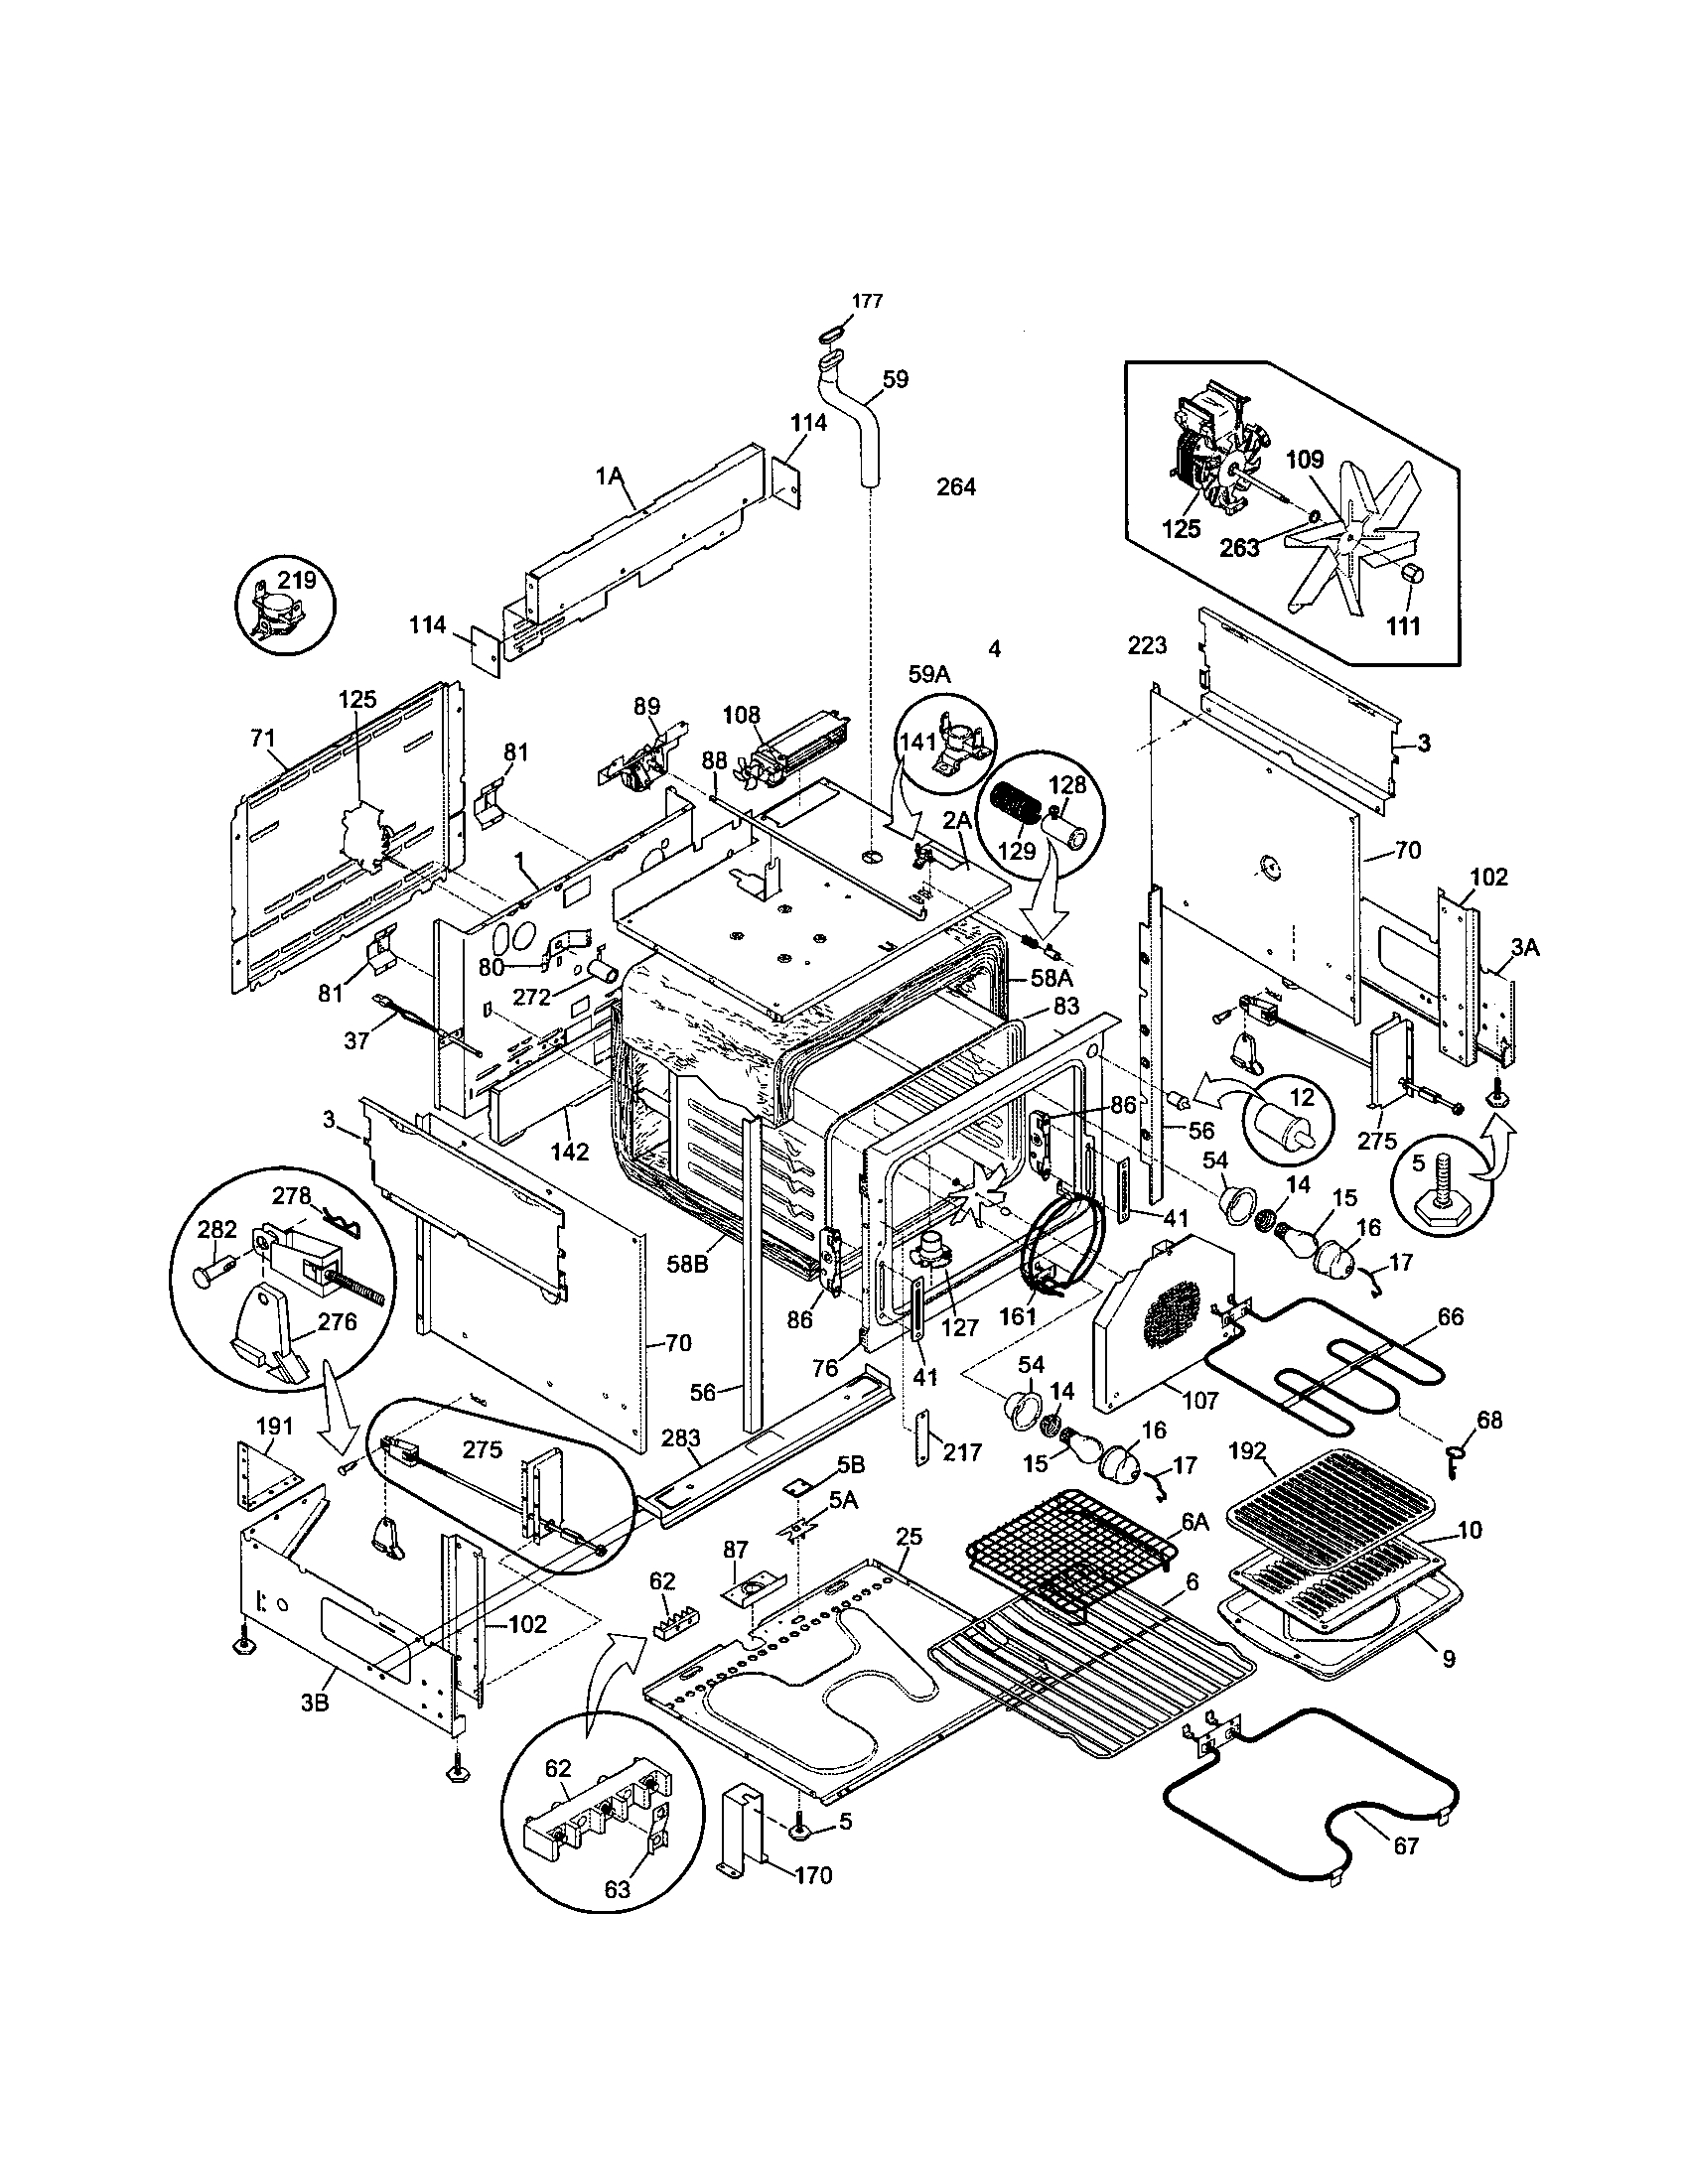 kenmore ultra wash dishwasher parts diagram | automotive ... wiring diagram kenmore dishwasher compressor wiring diagram kenmore refrigerator